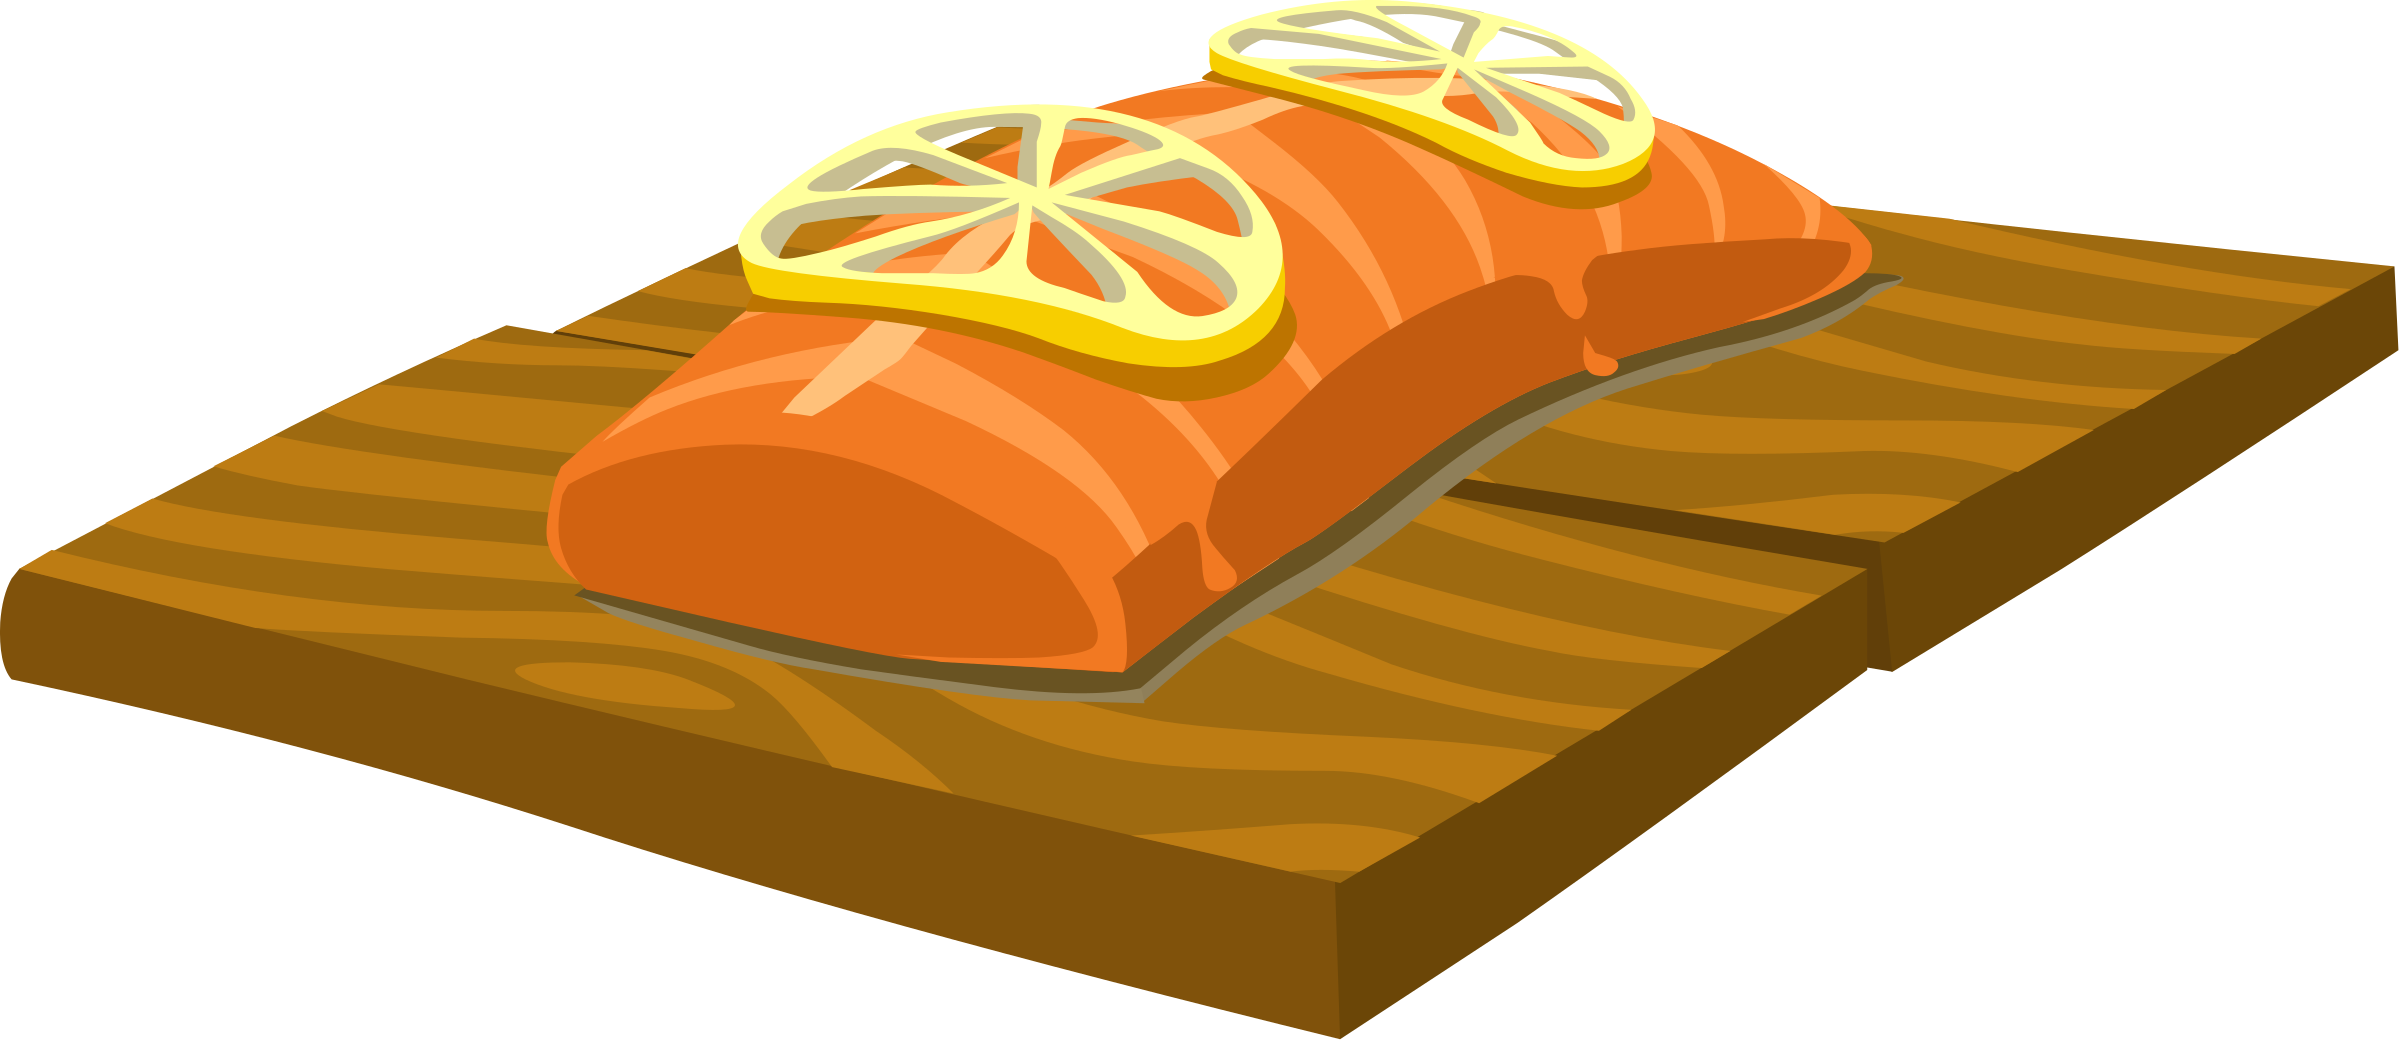 Food Cedar Plank Salmon by glitch